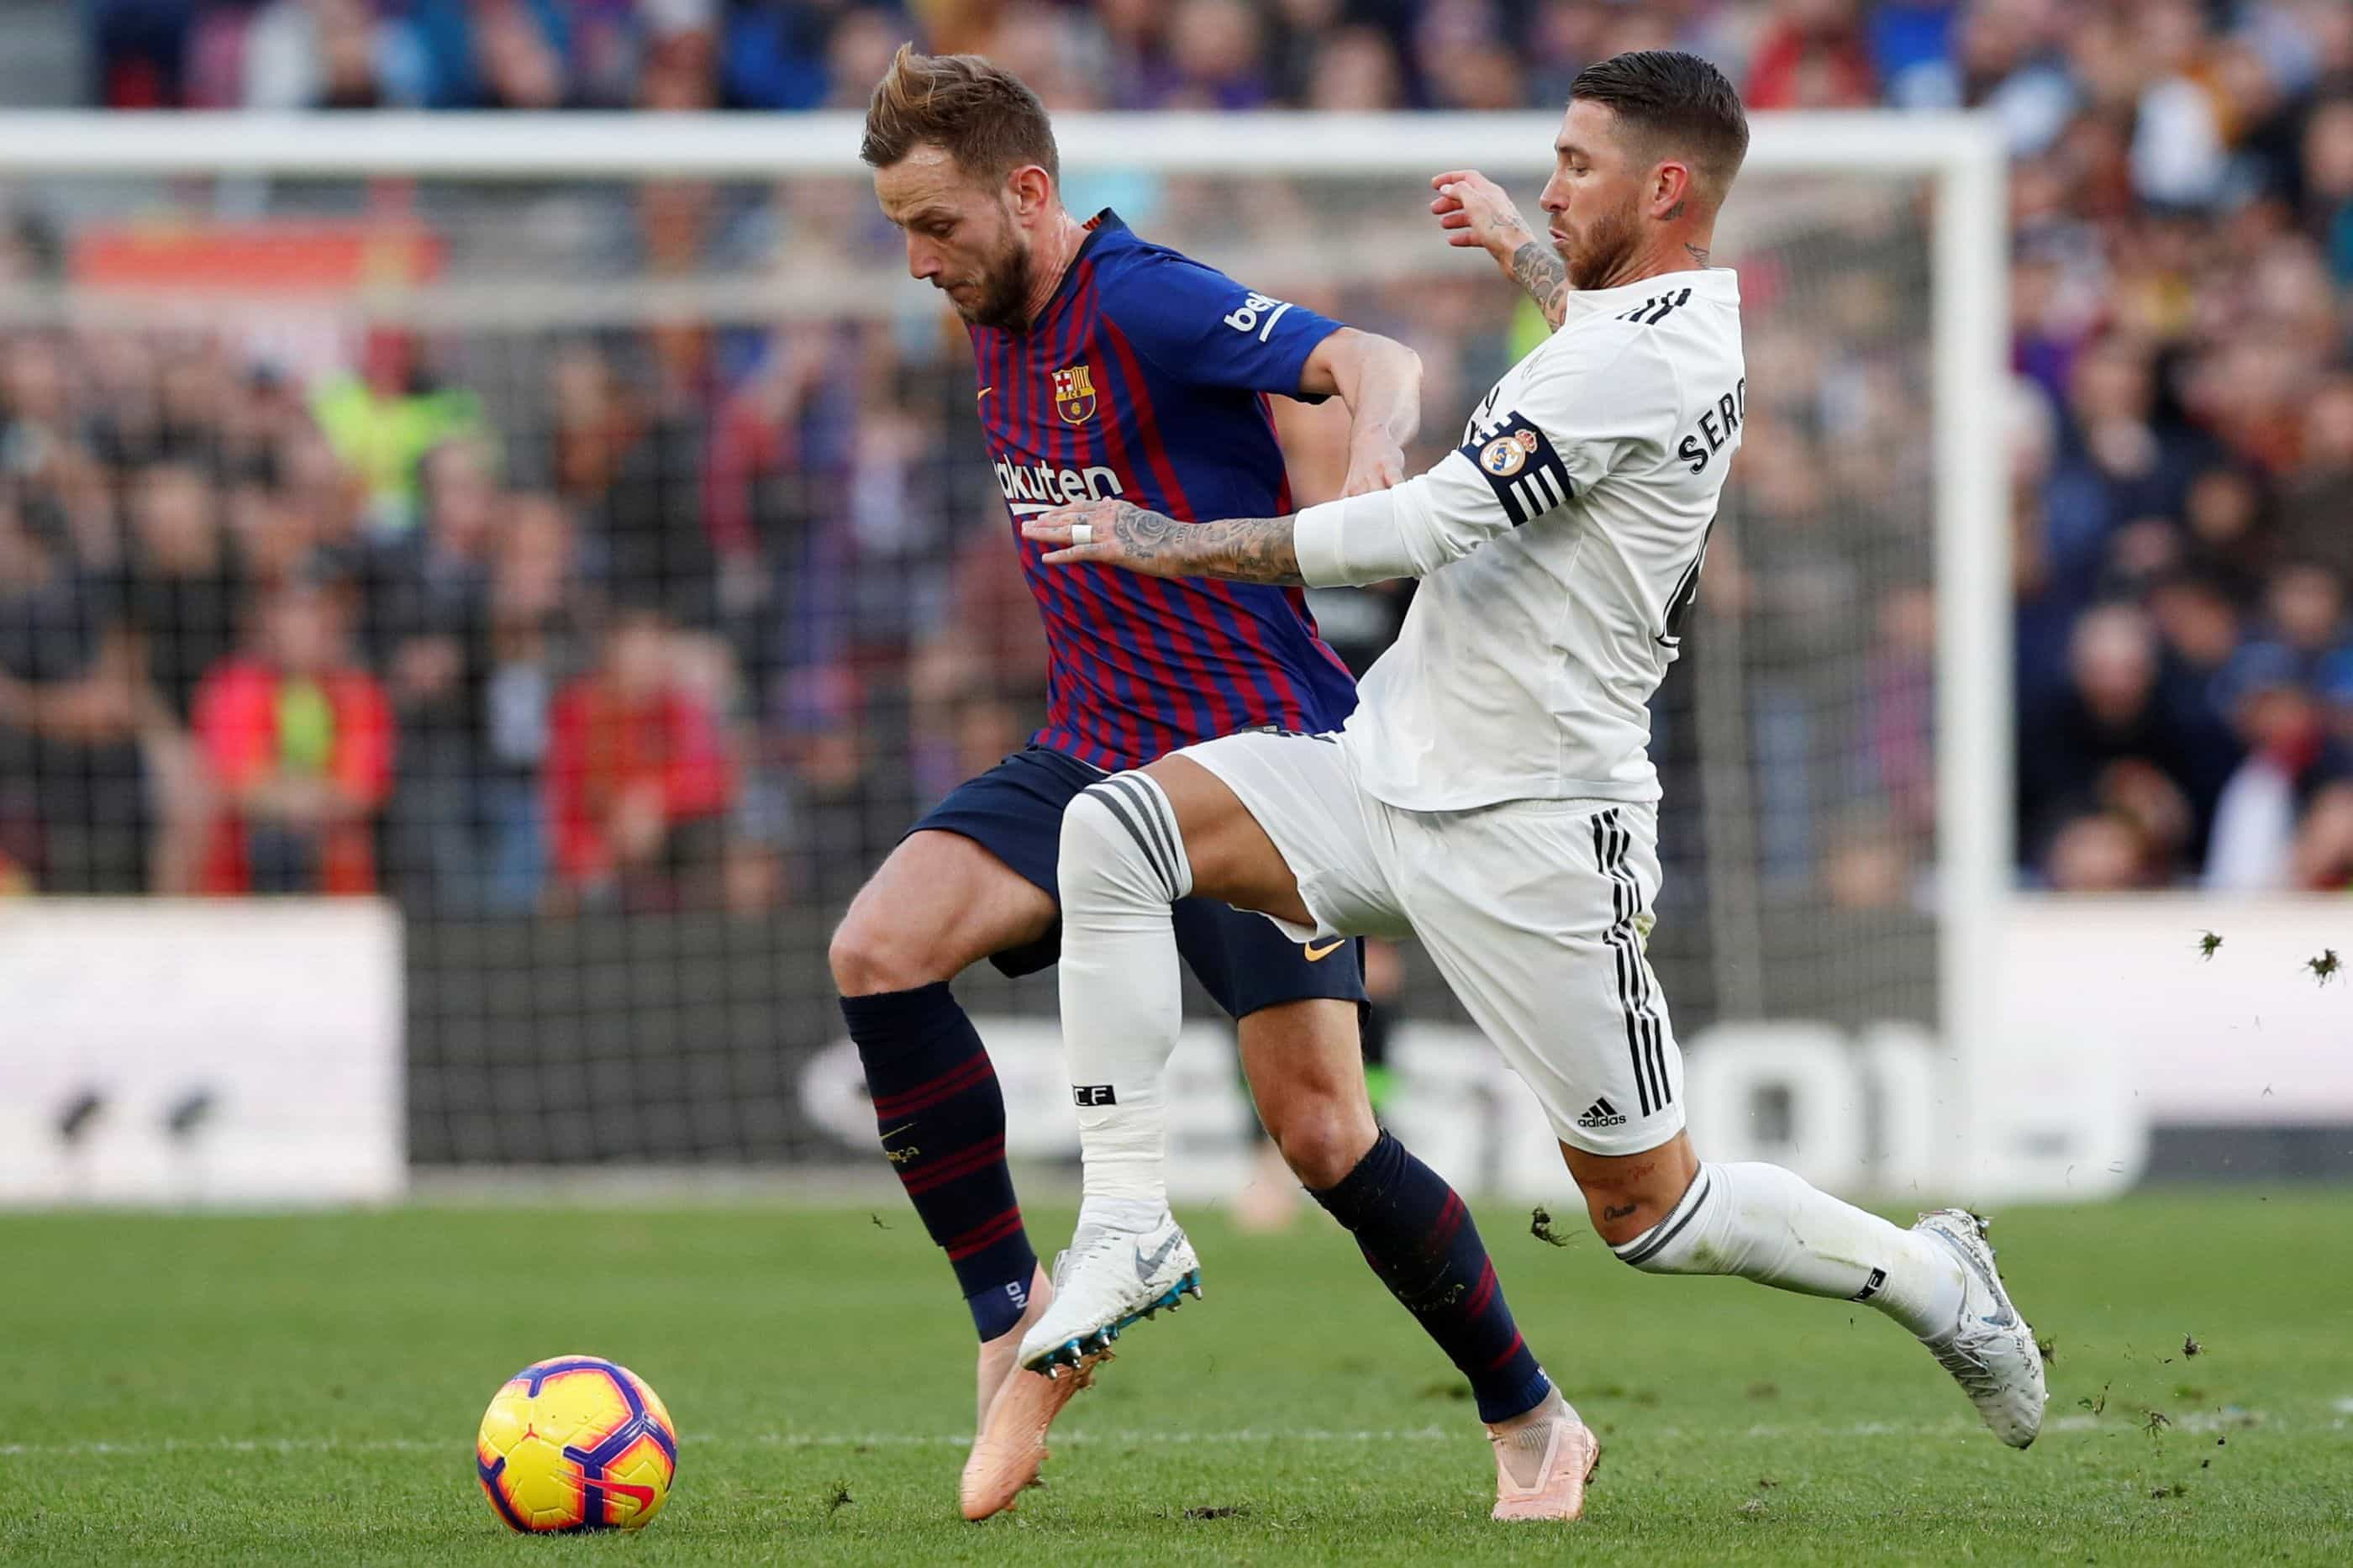 Sorteio dita Real Madrid-Barcelona nas 'meias' da Taça do Rei